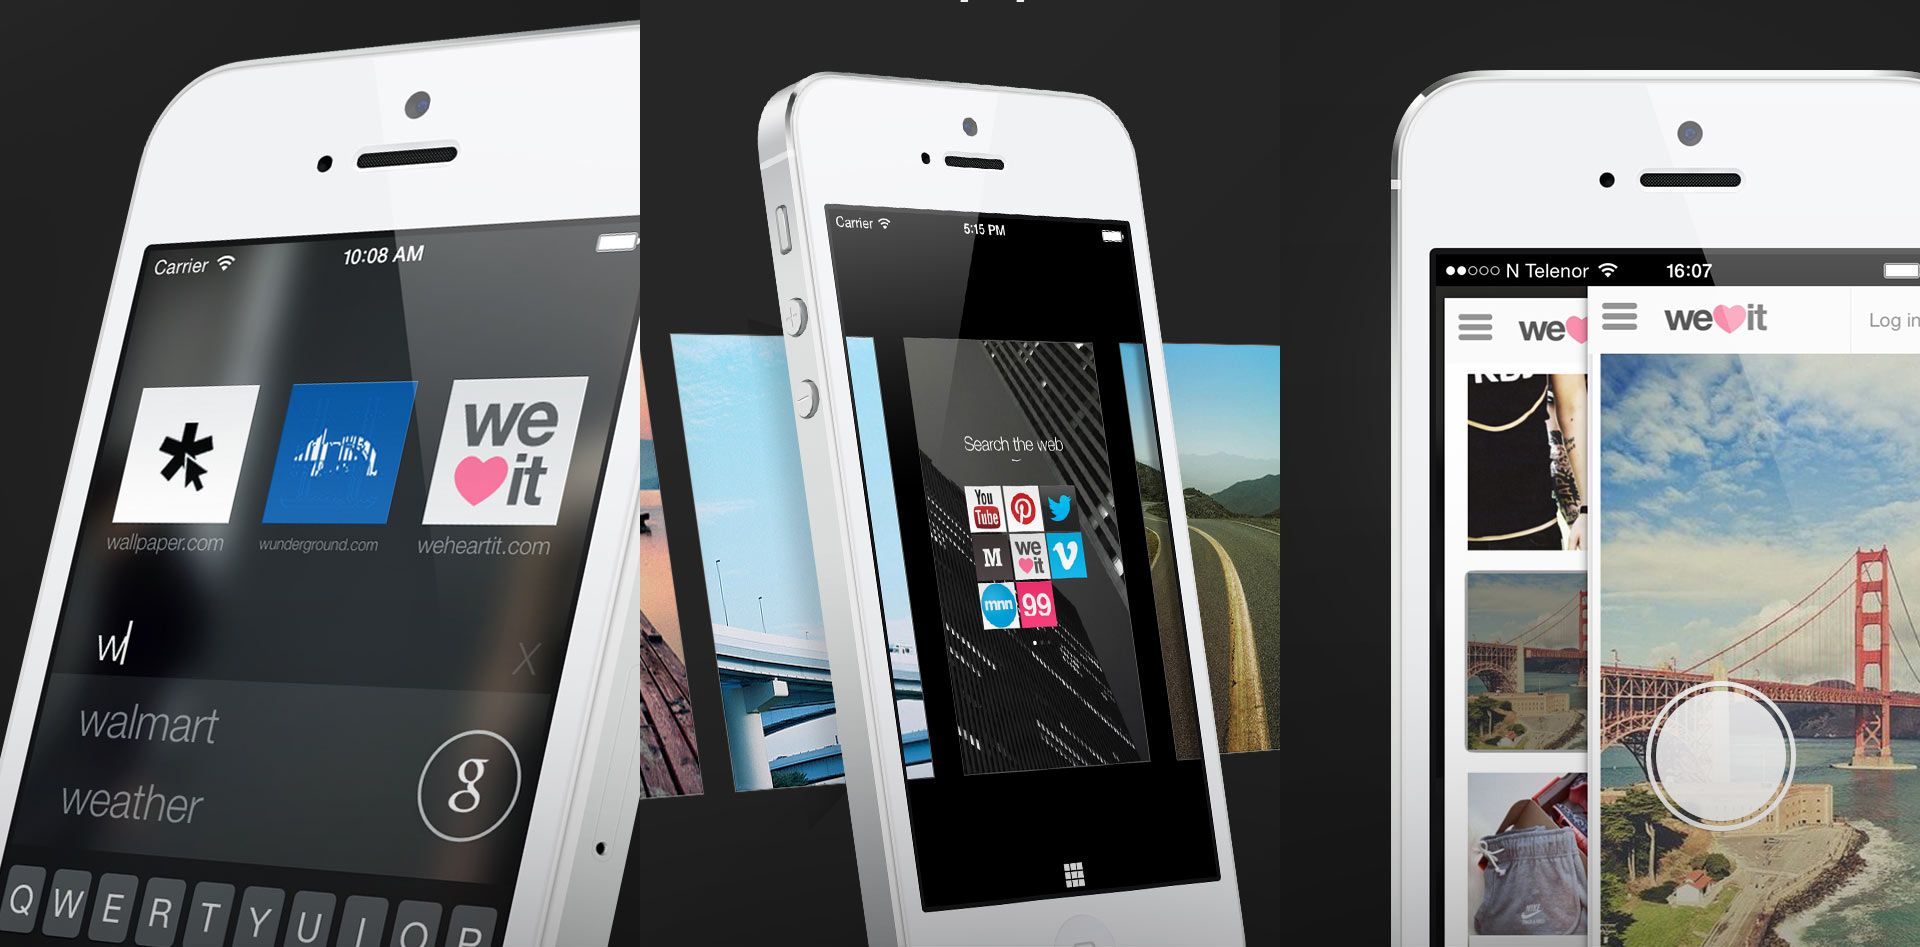 Opera Coast for iPhone autocompletes Web addresses, offers custom backgrounds, and relies on a gesture controls..